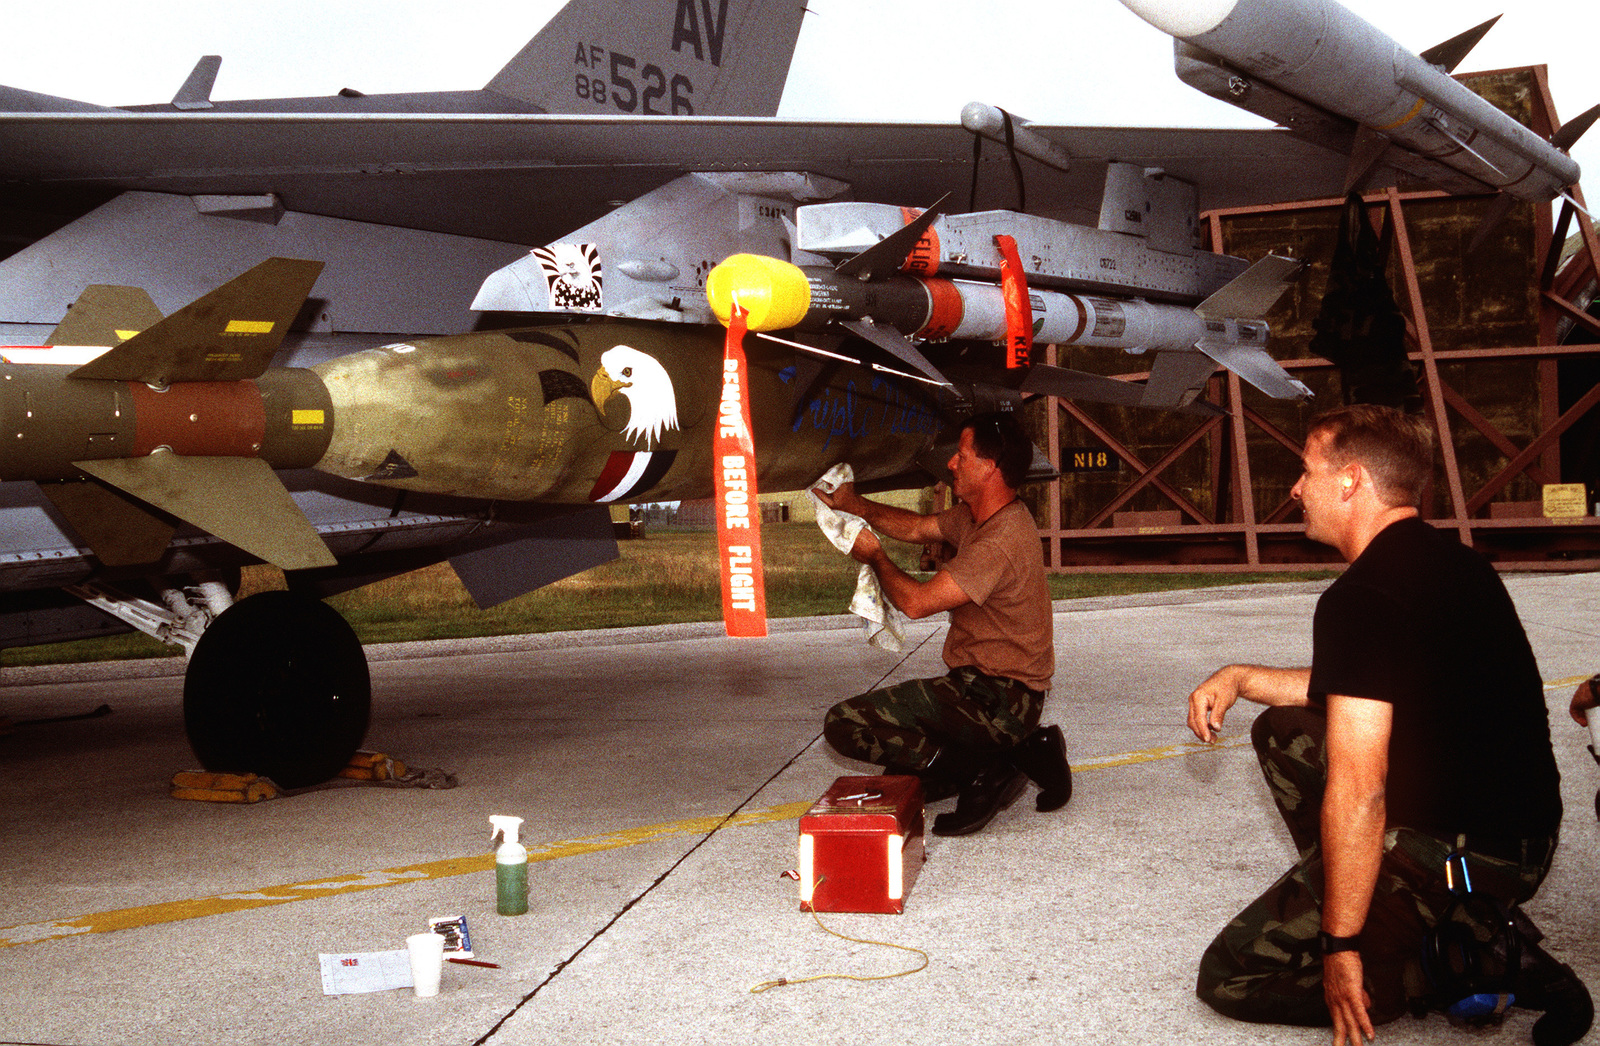 US Air Force STAFF Sgts. Day (left) and Barr (right), of the 555th Fighter Squadron, paint the Triple Nickel logo onto the munitions of a F-16C Fighting Falcon being prepared for NATO airstrikes against the Bosnian Serbs. A sidewinder missile is mounted above SGT. Days head on the wing pylon